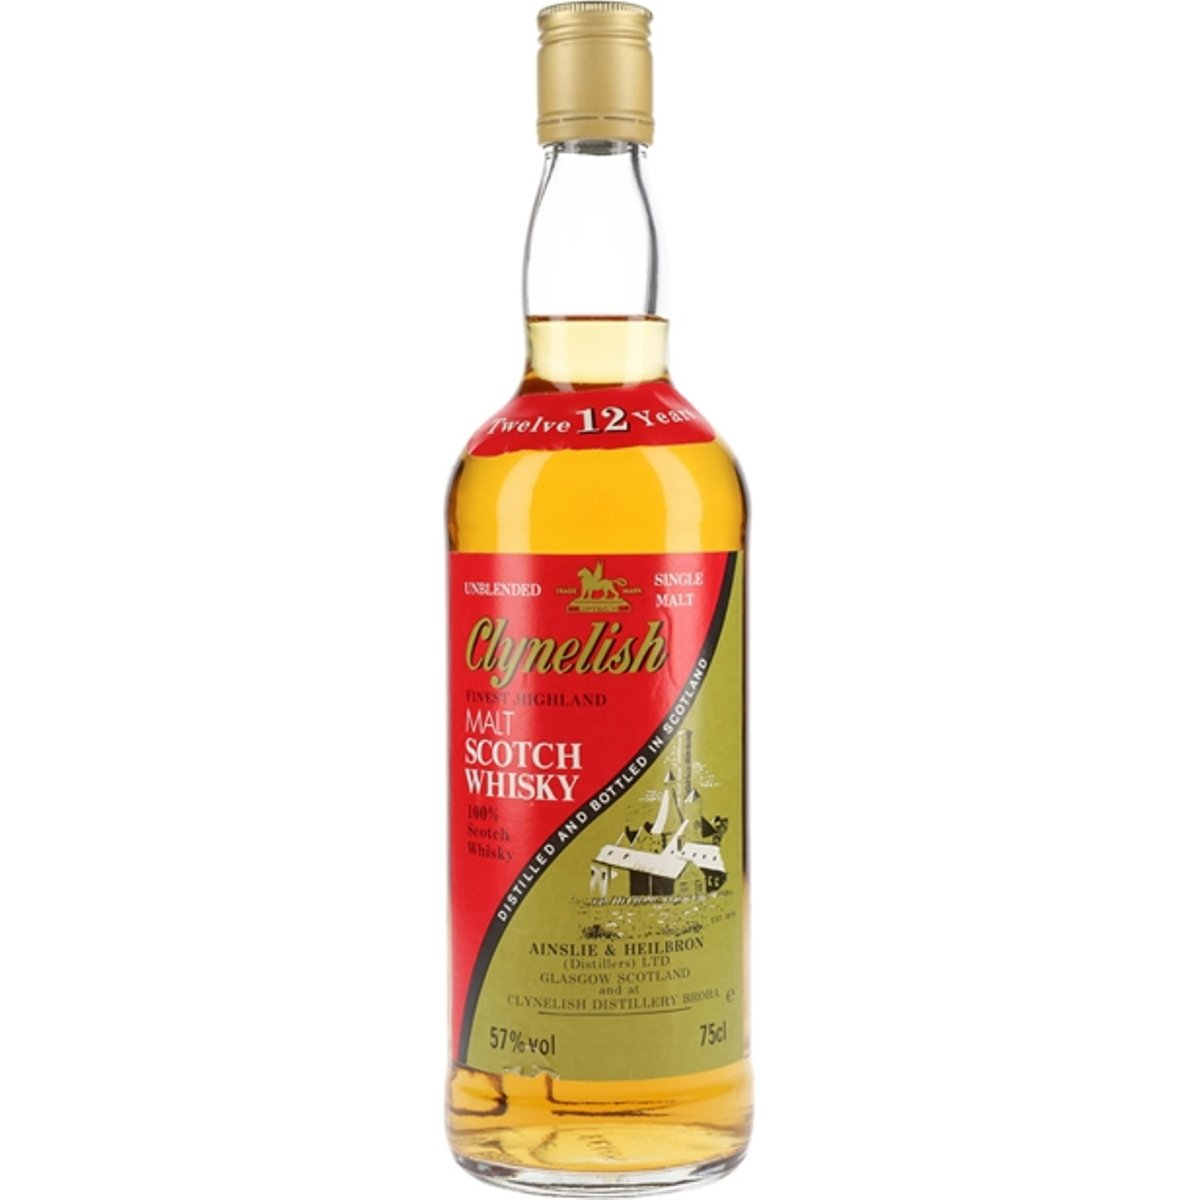 Clynelish 12 Year Old / Green & Red Label / Bot.1980s Highland Whisky